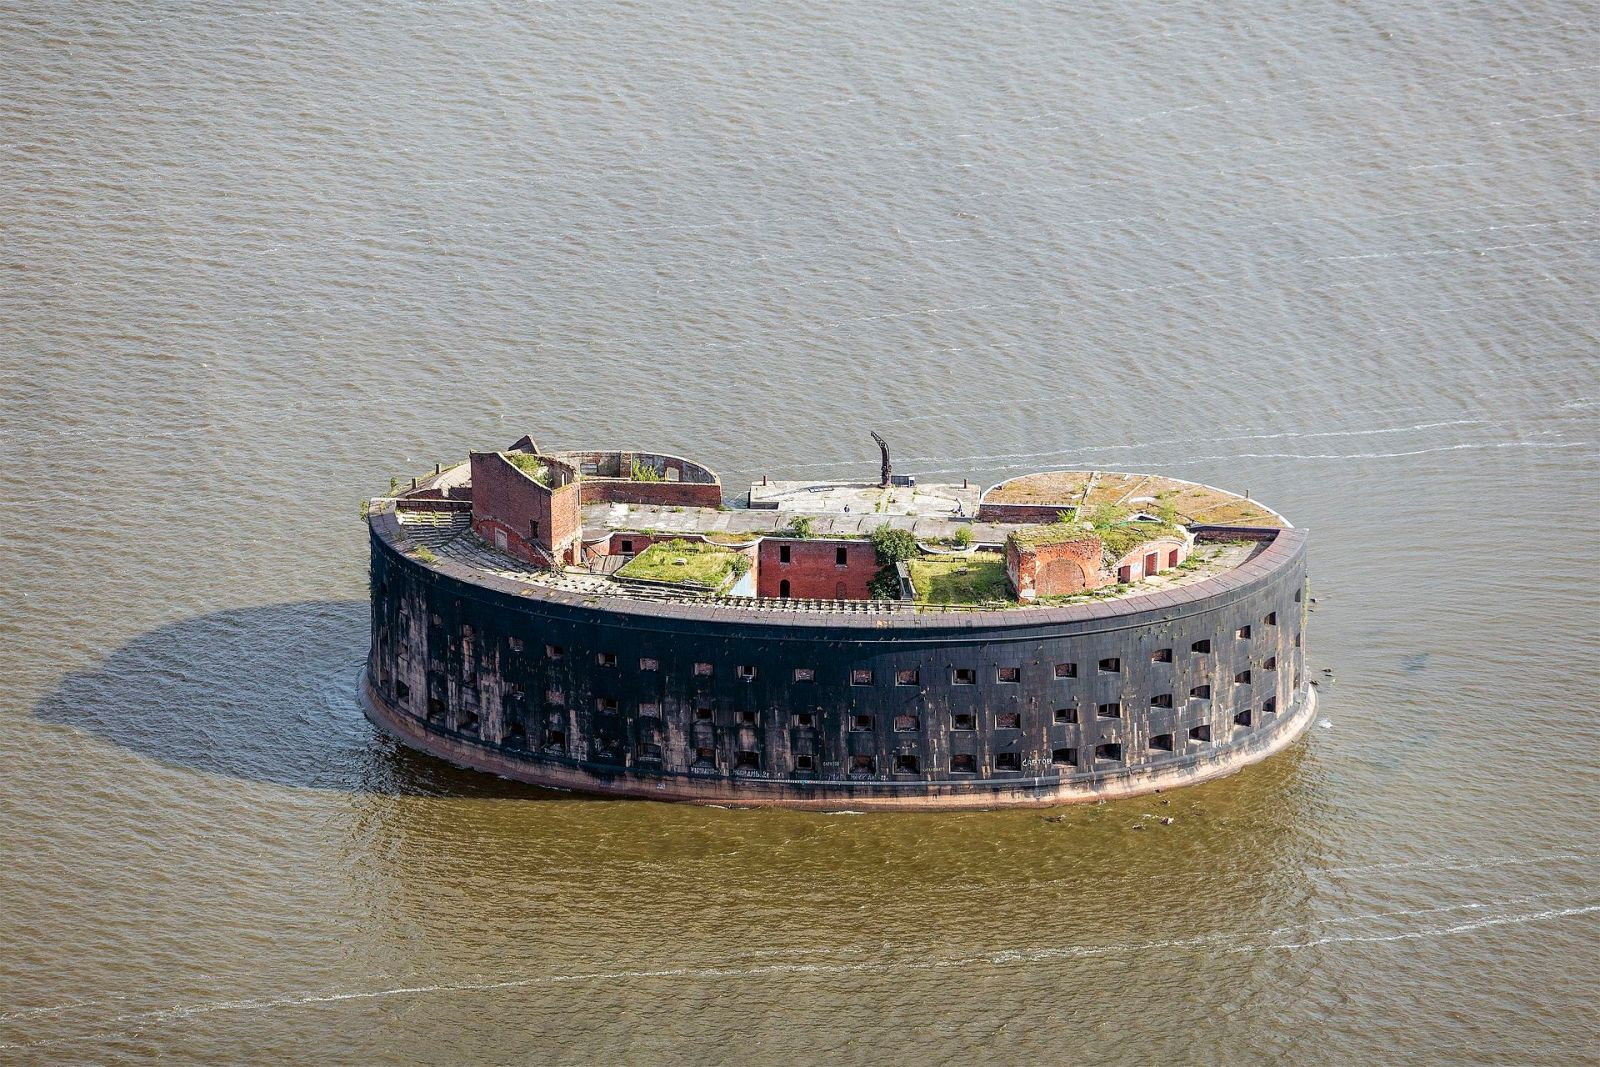 The floating fortress on the Baltic Sea